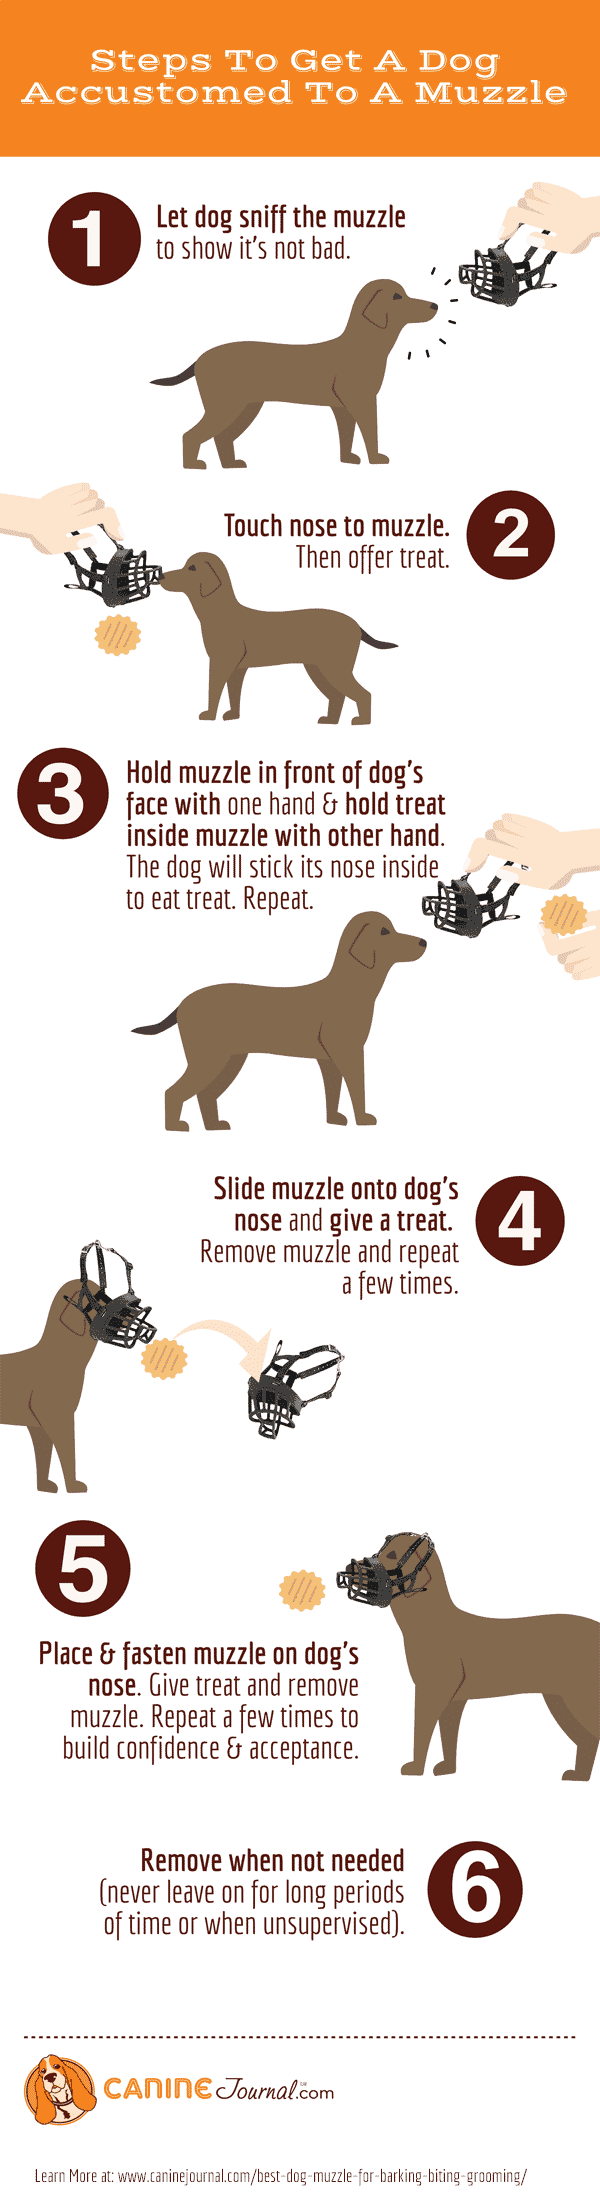 Steps To Get A Dog Accustomed To A Muzzle Infographic